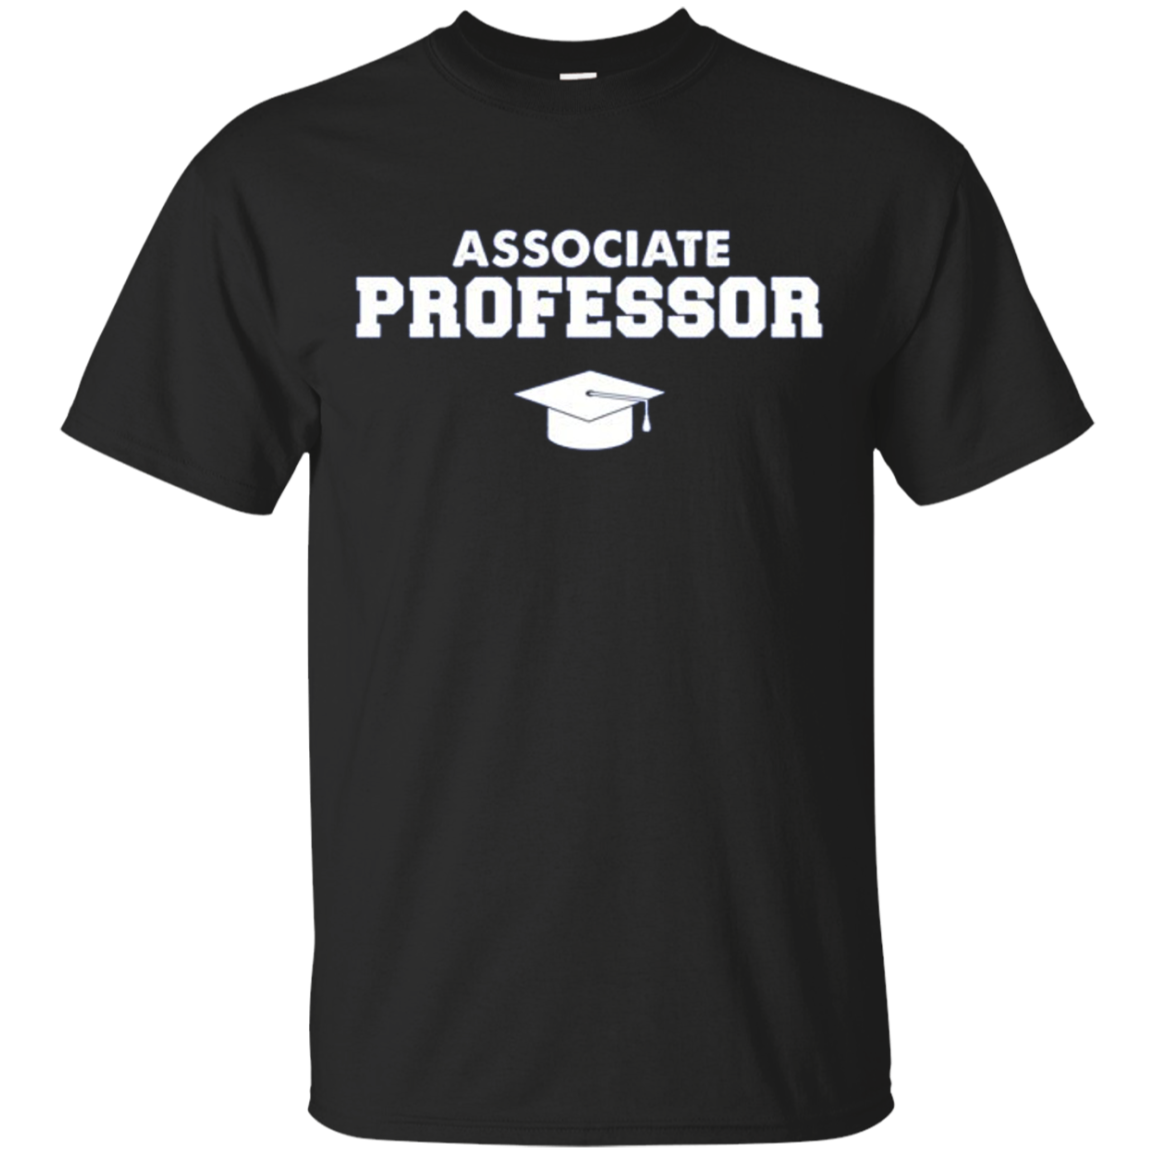 Associate Professor Academic Shirt for College Teachers